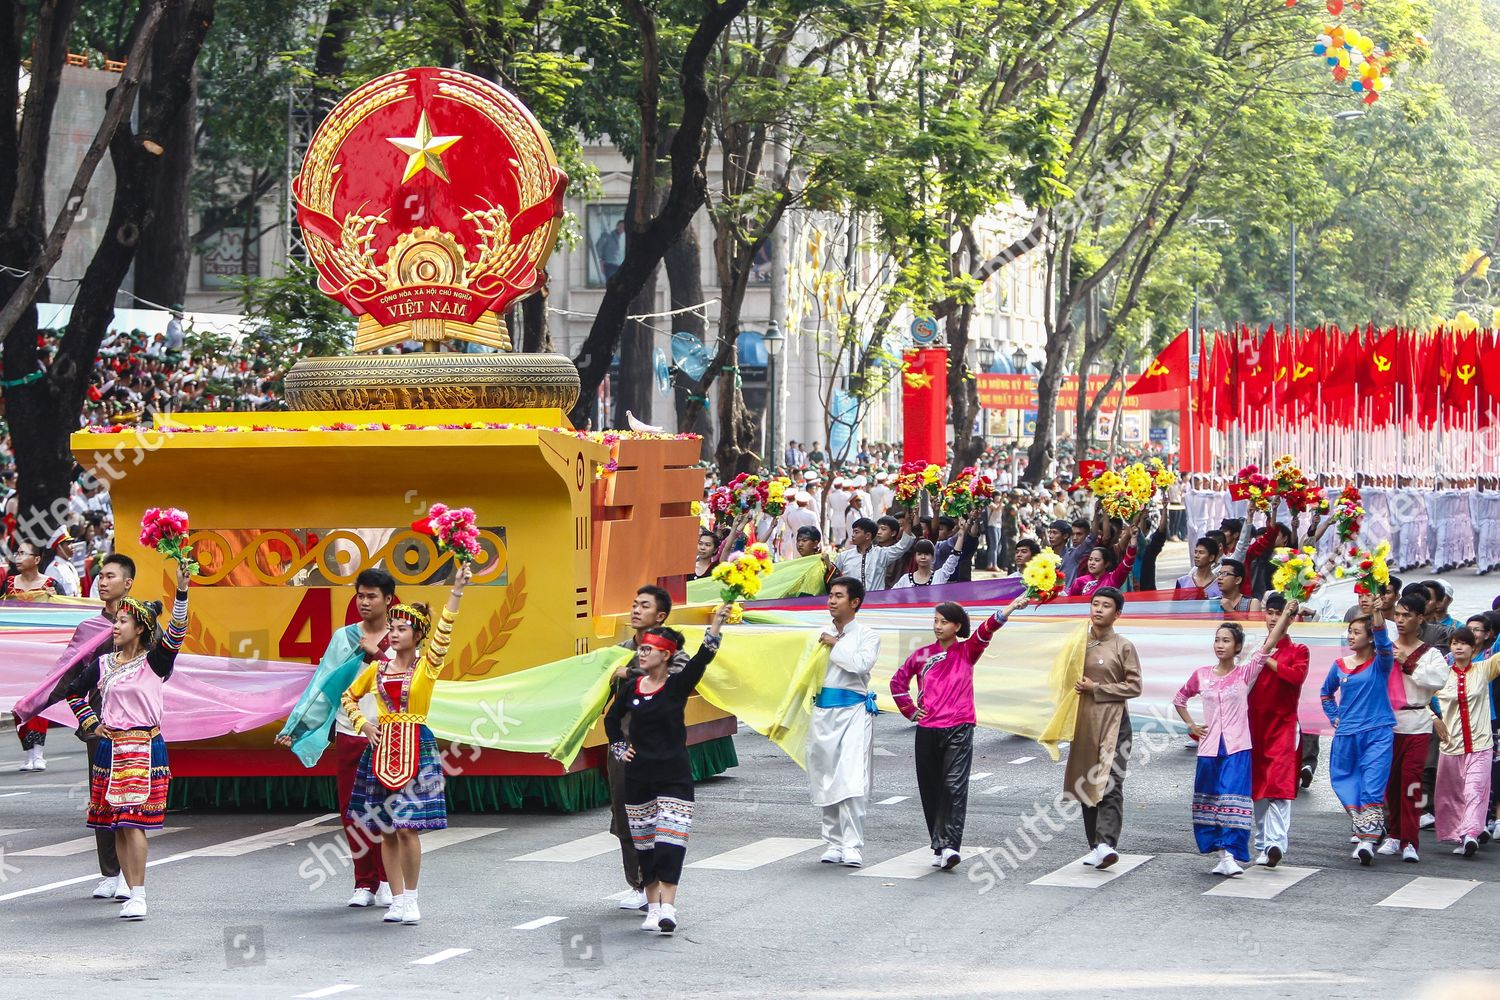 People Dressed Ethnic Minorities March During Parade Editorial Stock